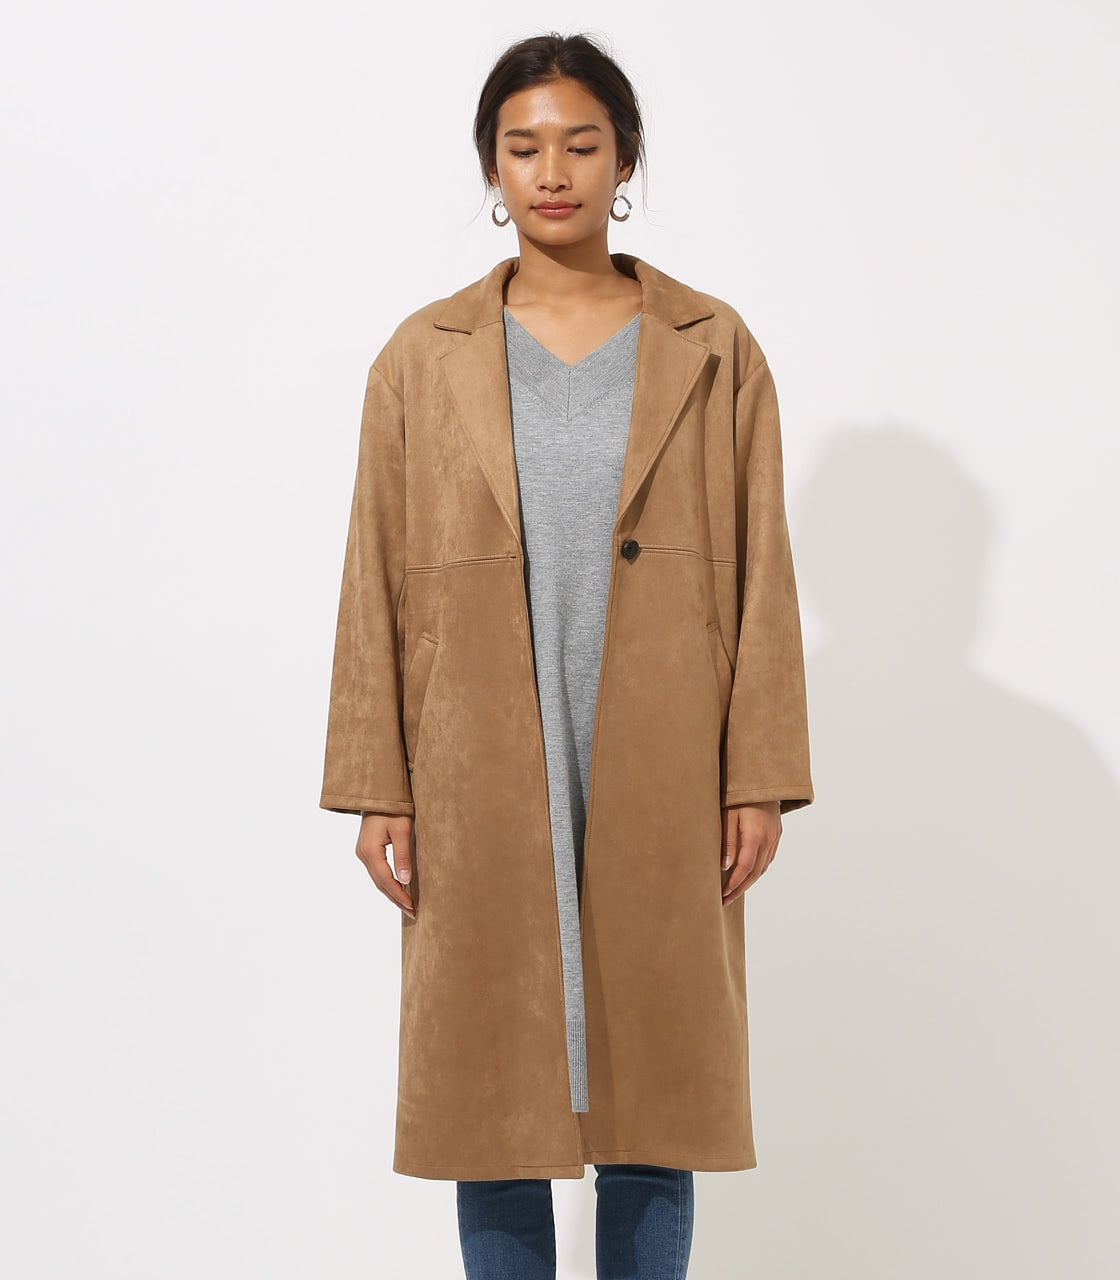 【AZUL BY MOUSSY】FAKE SUEDE CHESTER COAT 詳細画像 CAM 5